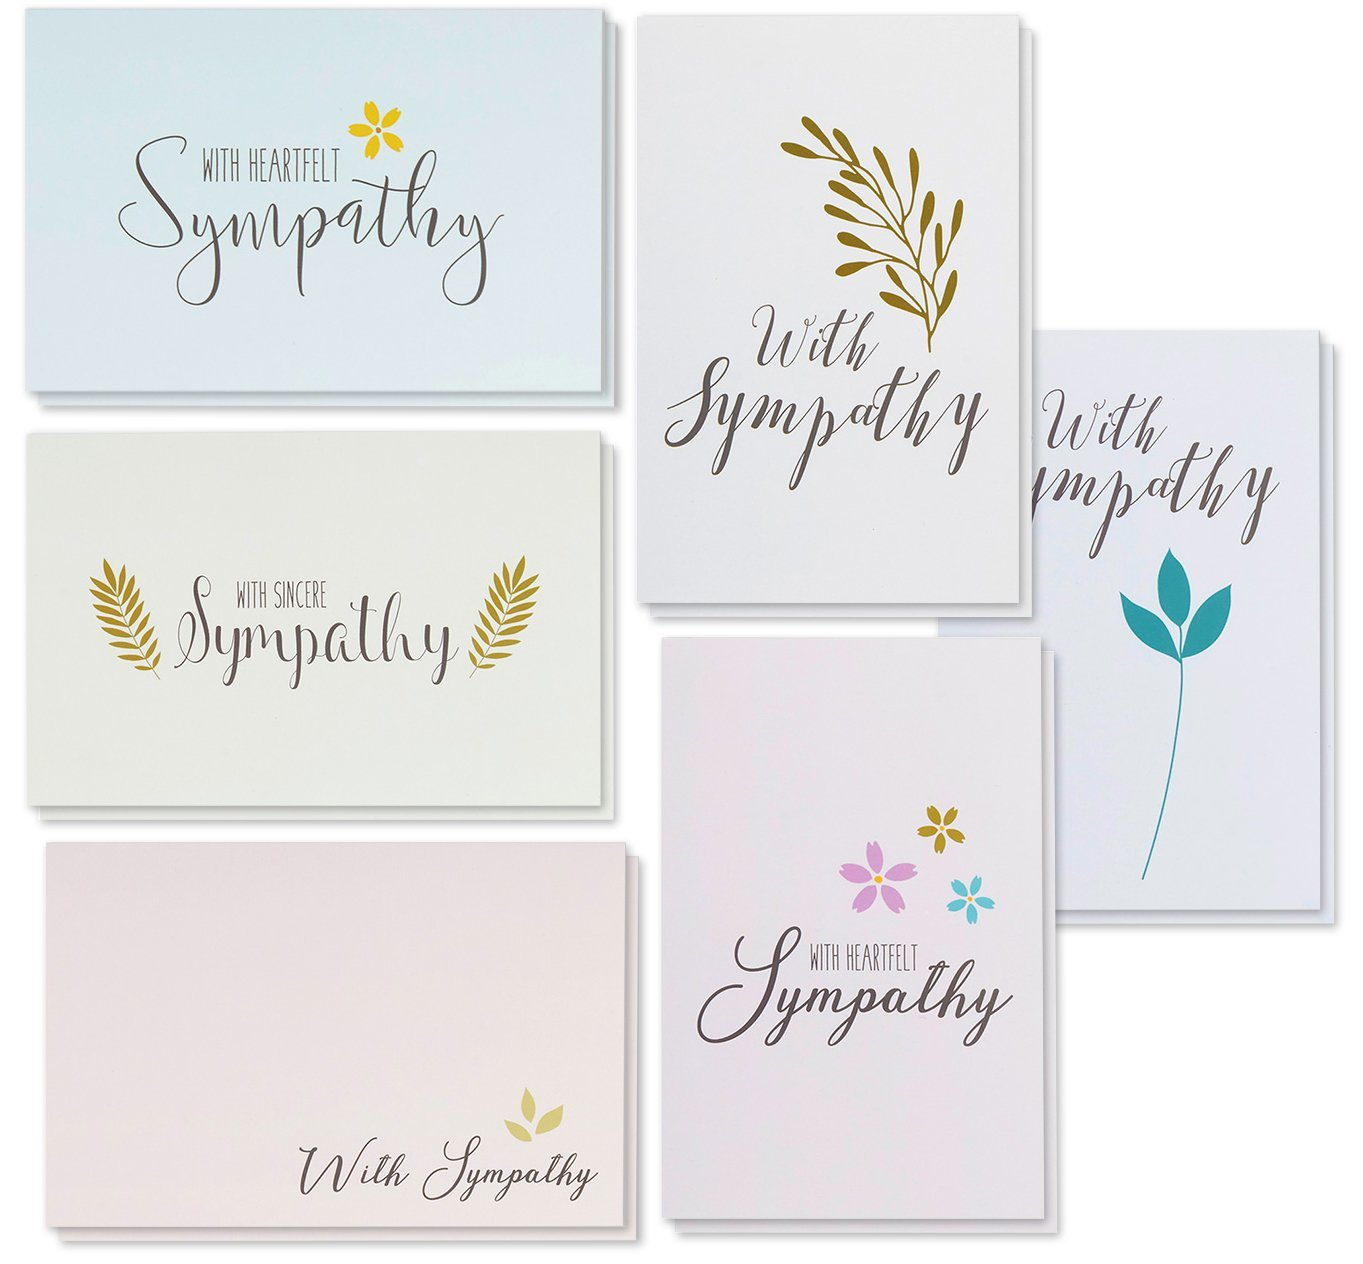 Sympathy Cards - 48-Pack Sympathy Cards Bulk, Greeting Cards Sympathy, 6 Floral Foliage Designs, Envelopes Included, Assorted Sympathy Cards, 4 x 6 inches